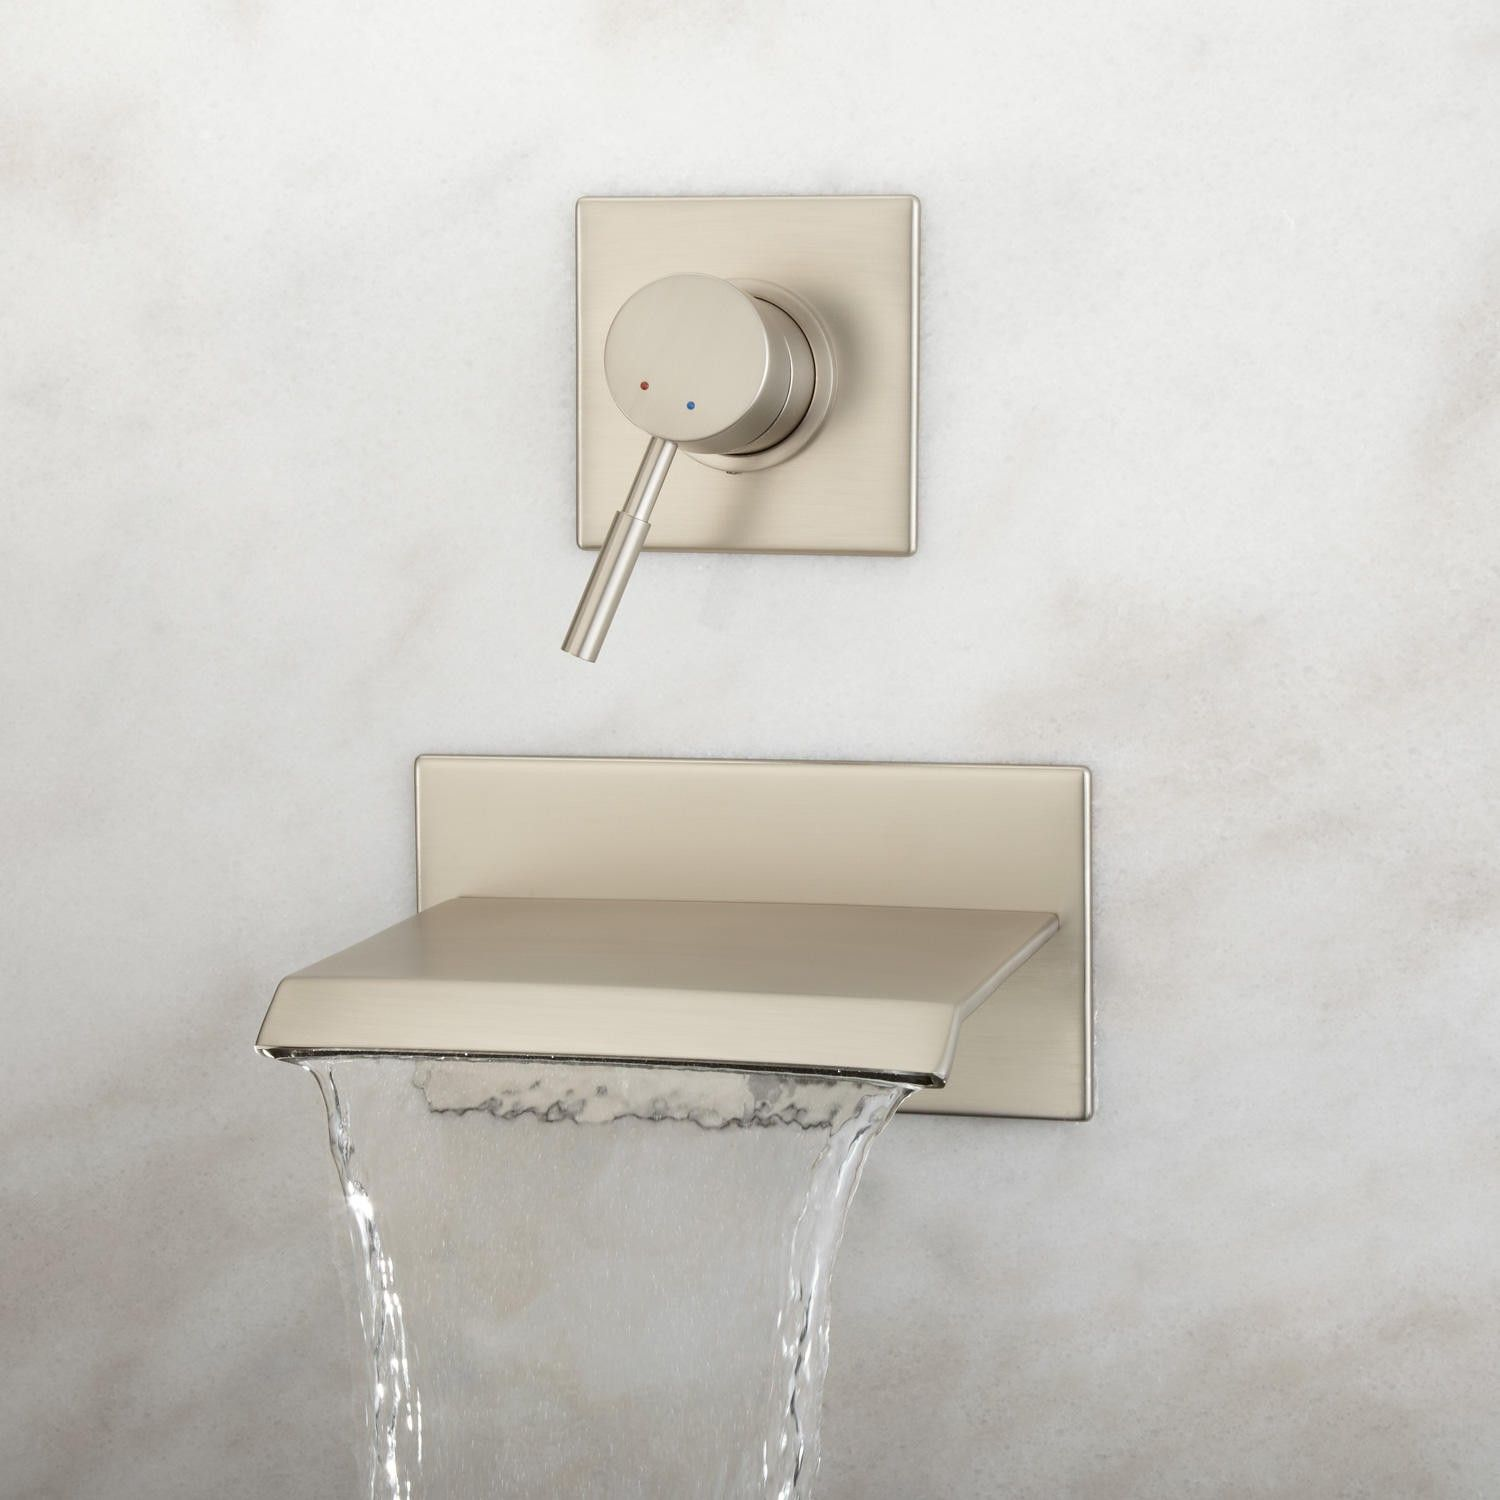 Lavelle Wall-Mount Waterfall Tub Faucet | Master Bedroom Prescott ...